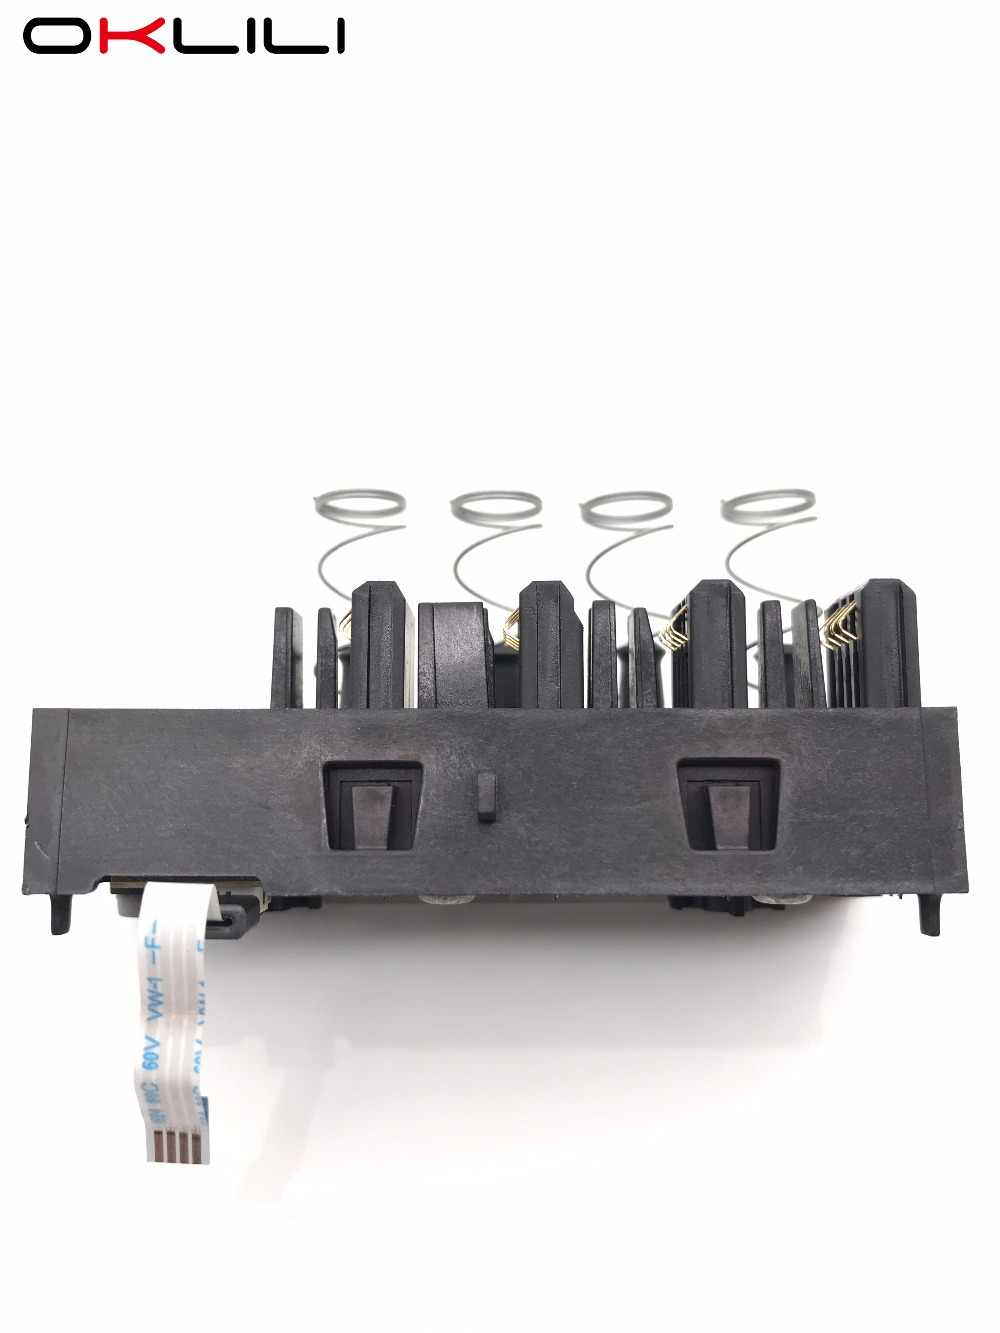 950 951 950XL 951XL PrintHead Print Head pen Holder Rack Chip contactor sensor for HP 8100 8600 8610 8620 8630 8640 251DW 276DW